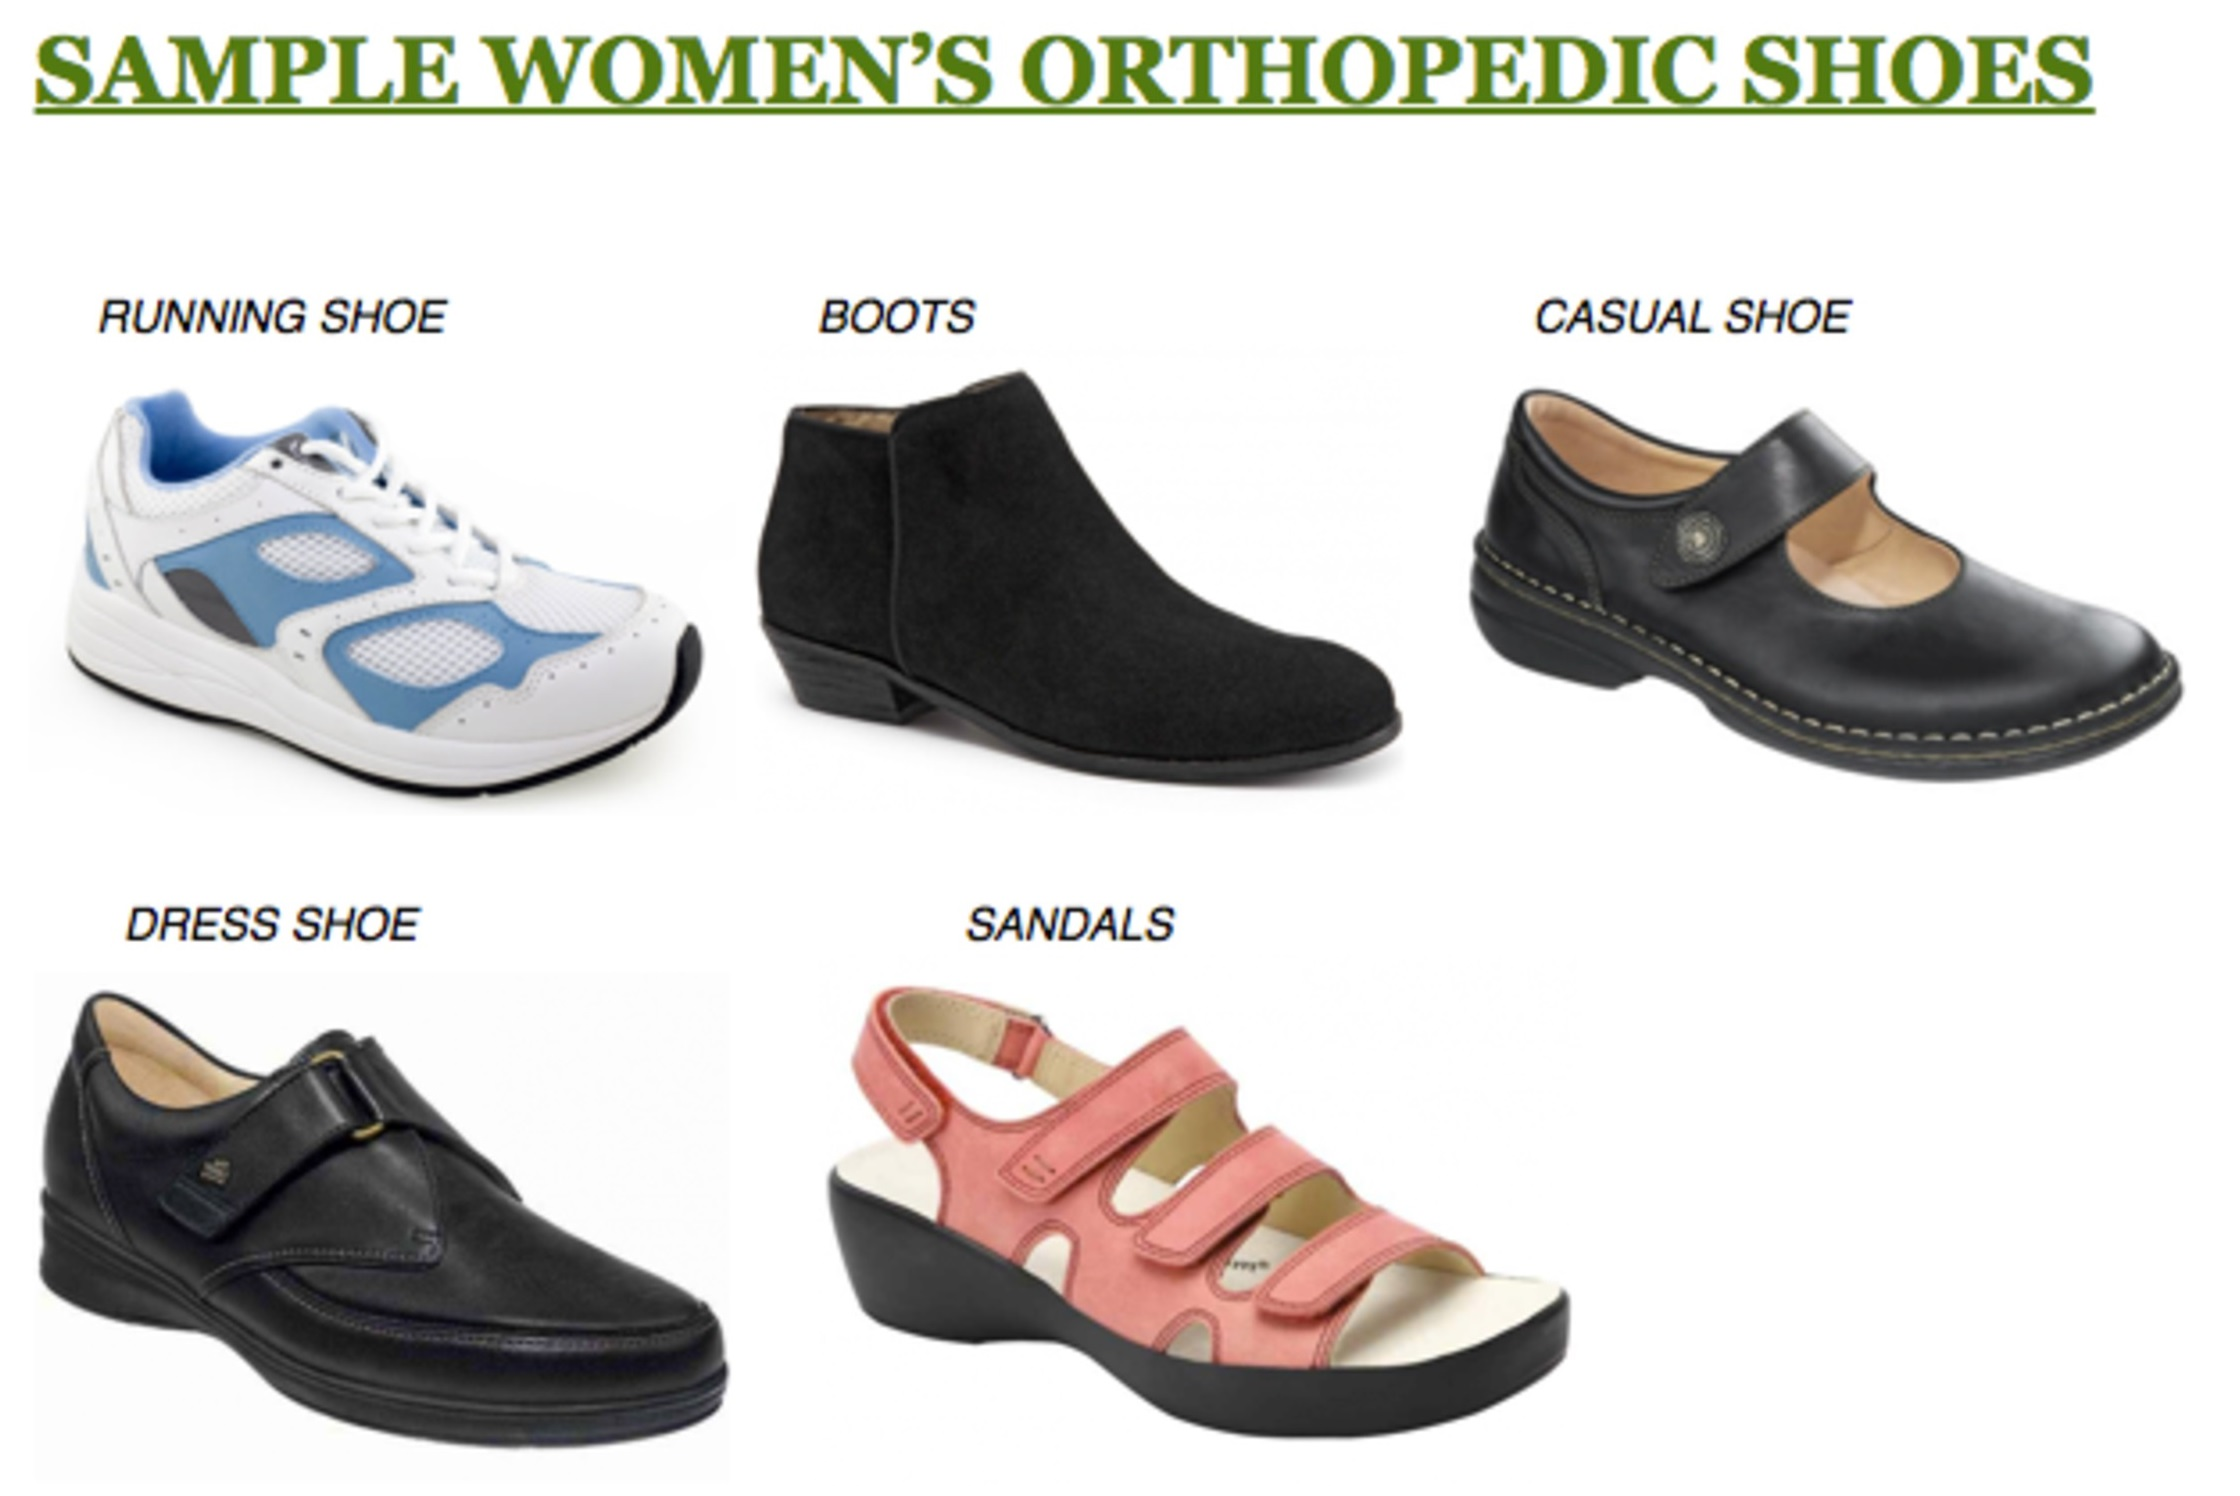 80f243909c Orthopedic Shoes Carried by The Brampton Foot Clinic: